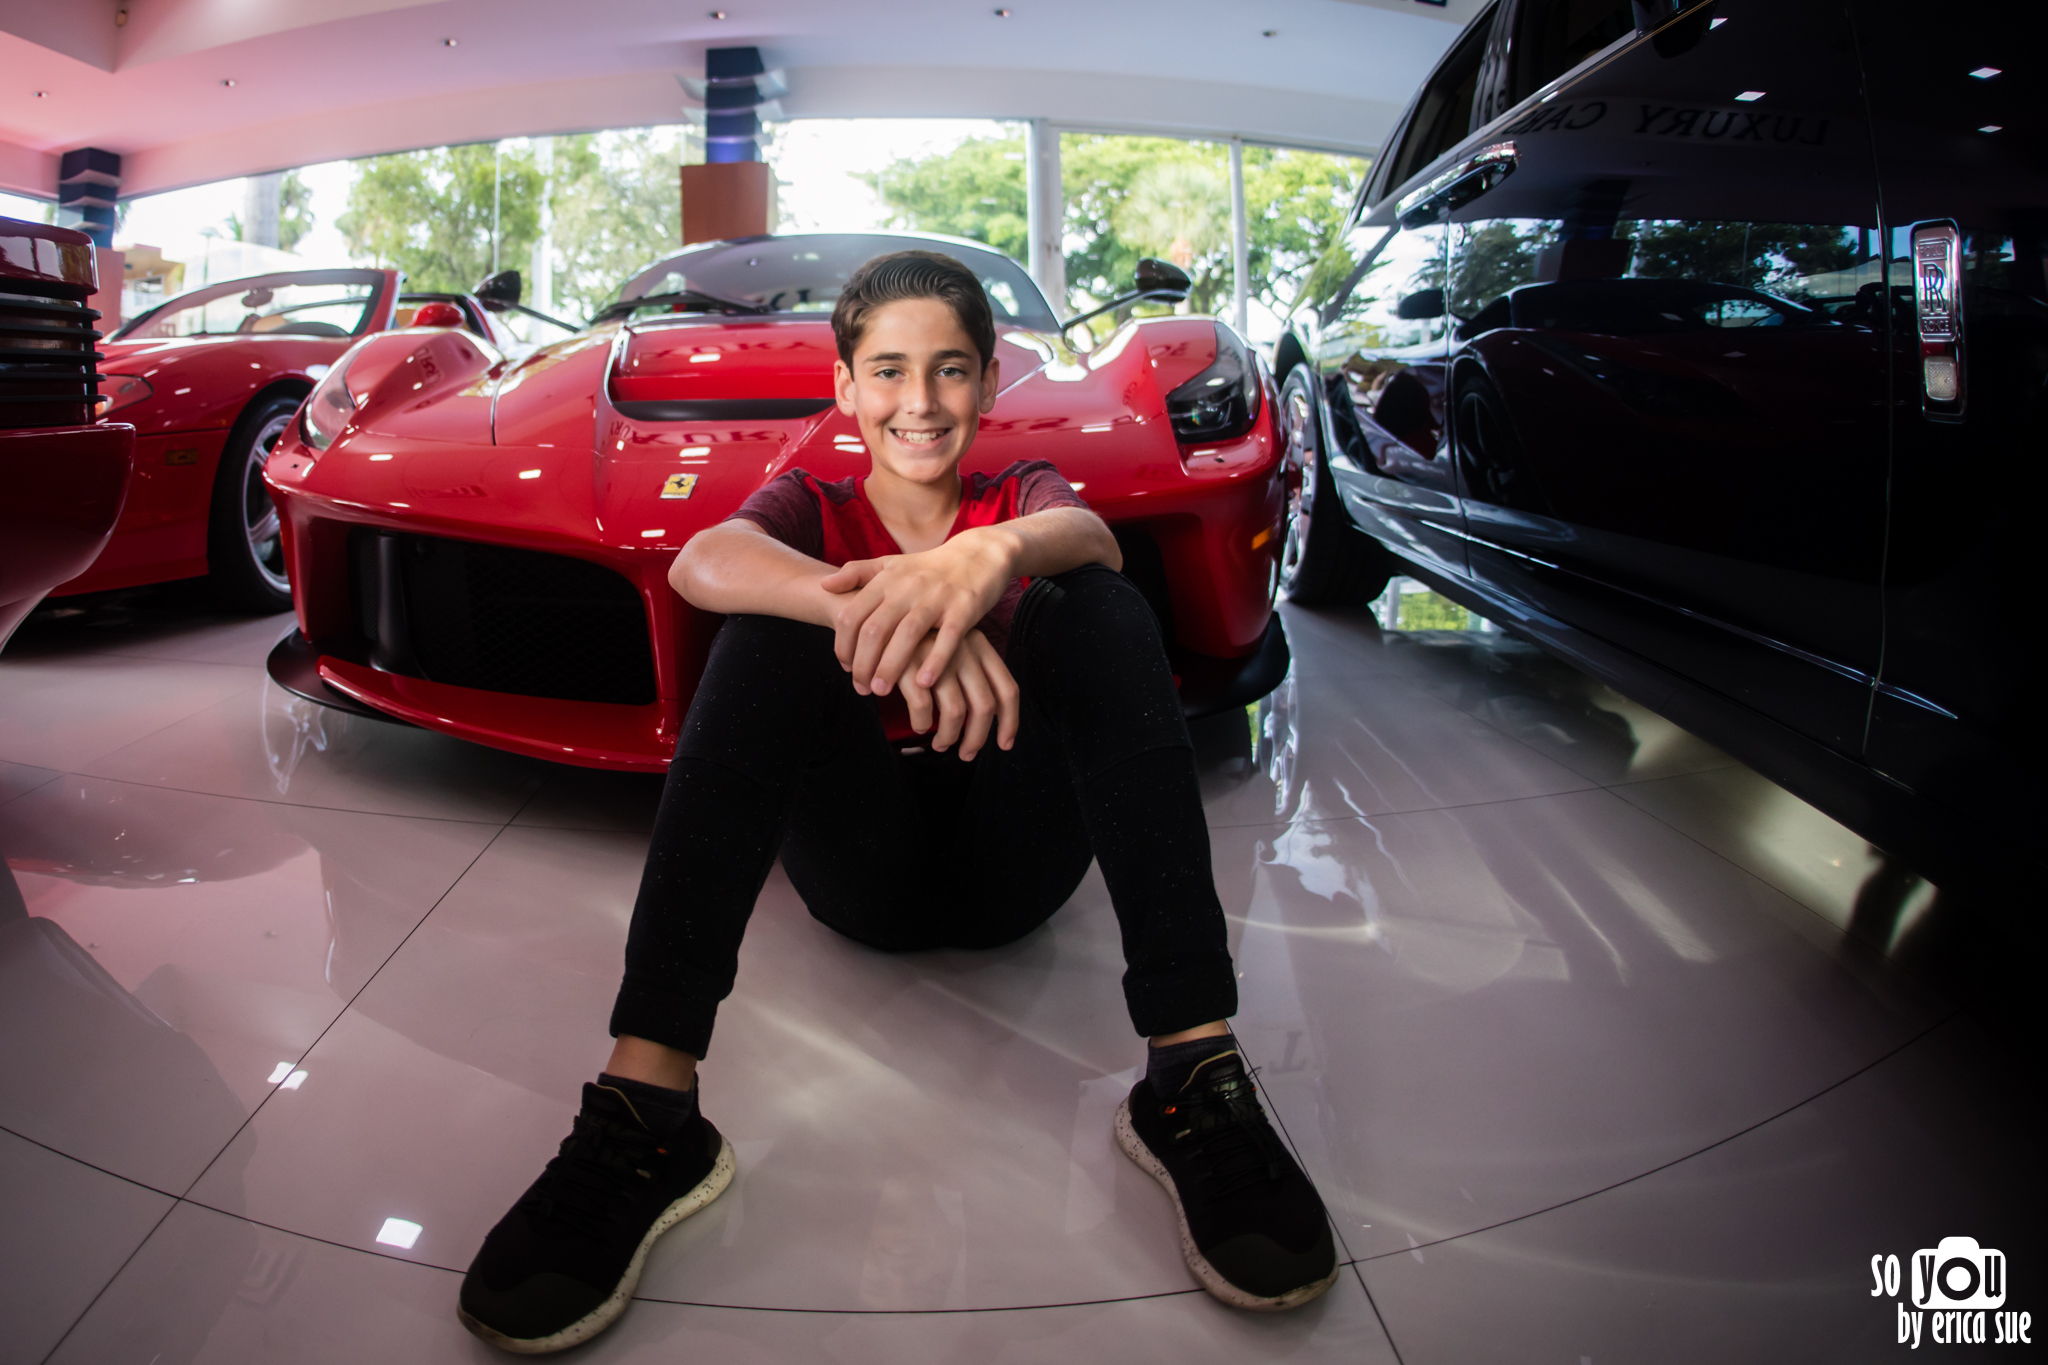 so-you-by-erica-sue-mitzvah-photographer-collection-luxury-car-ft-lauderdale-4894.jpg